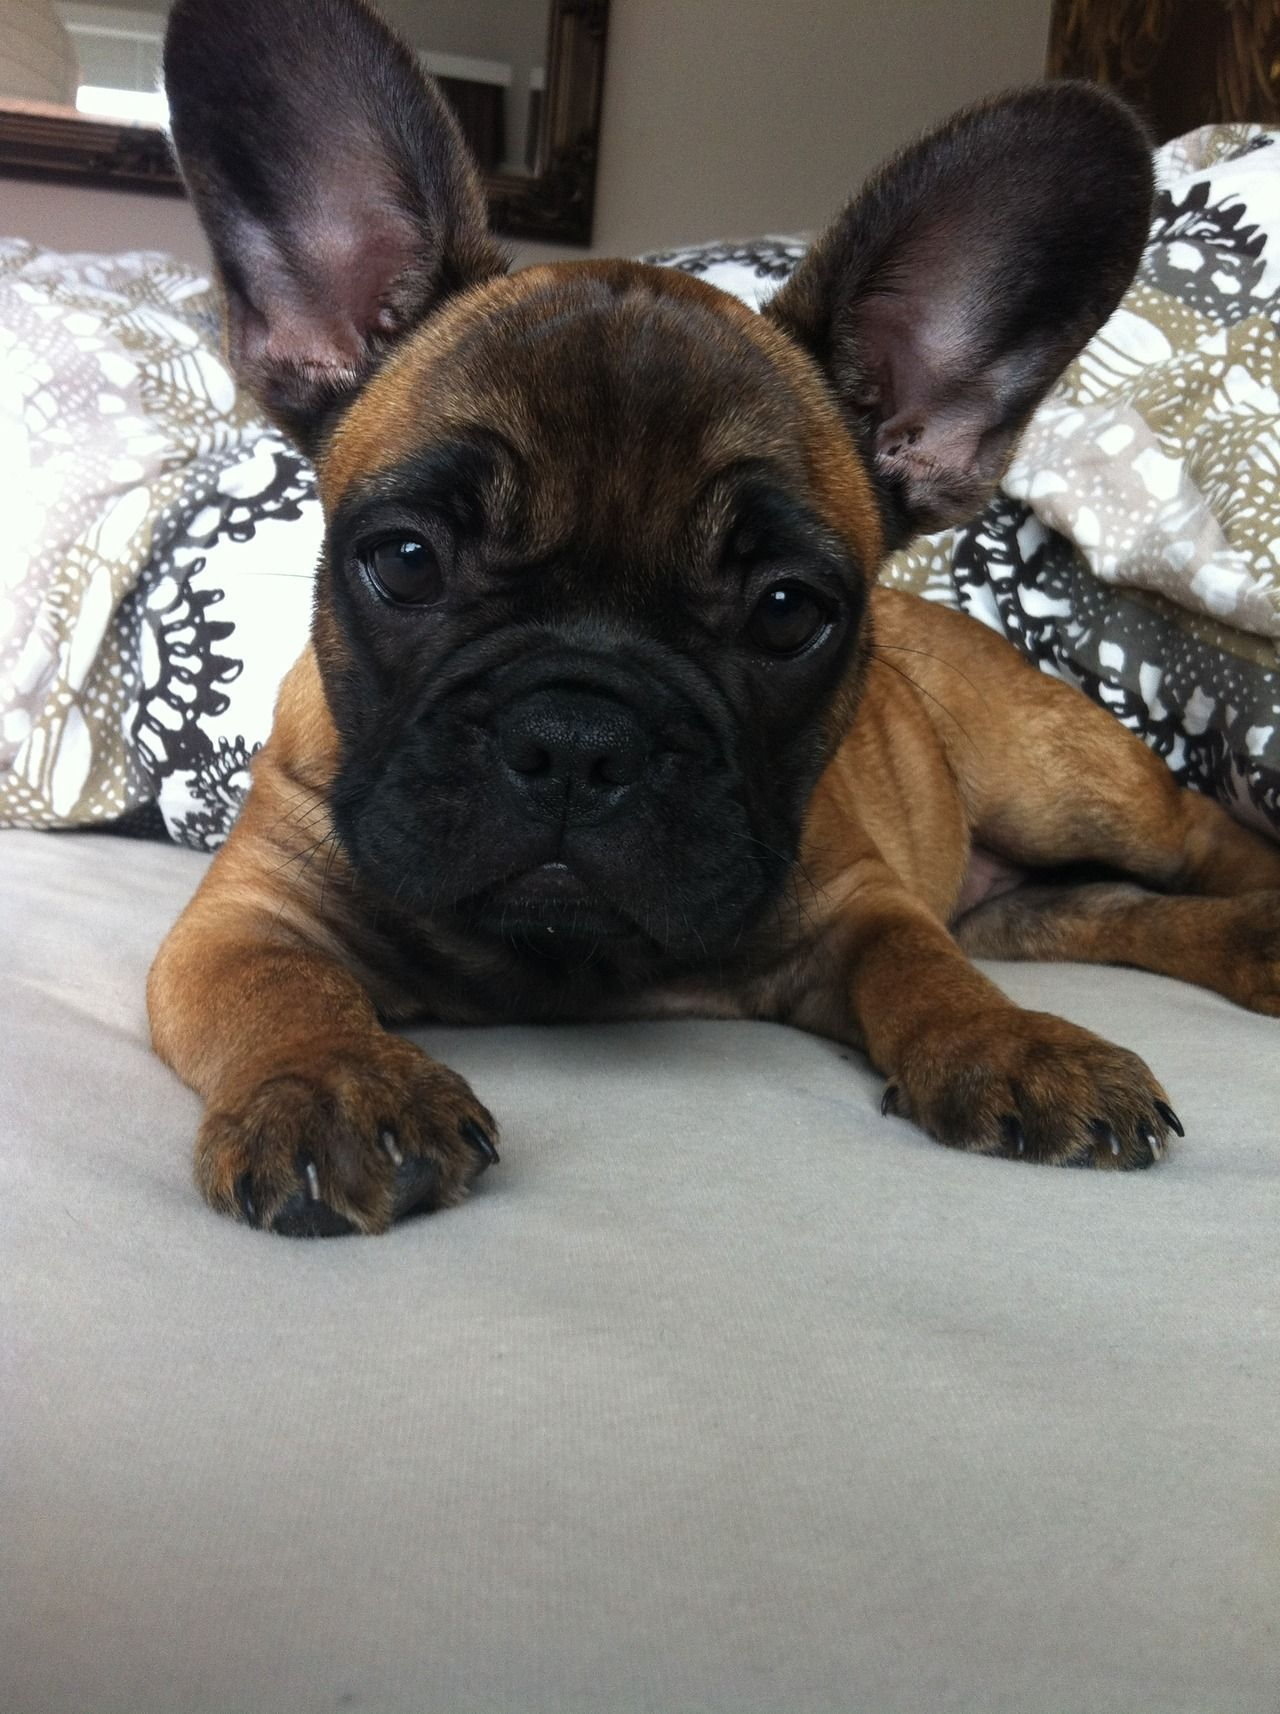 Pampered French Bulldog Puppy. bulldogpuppies buldog